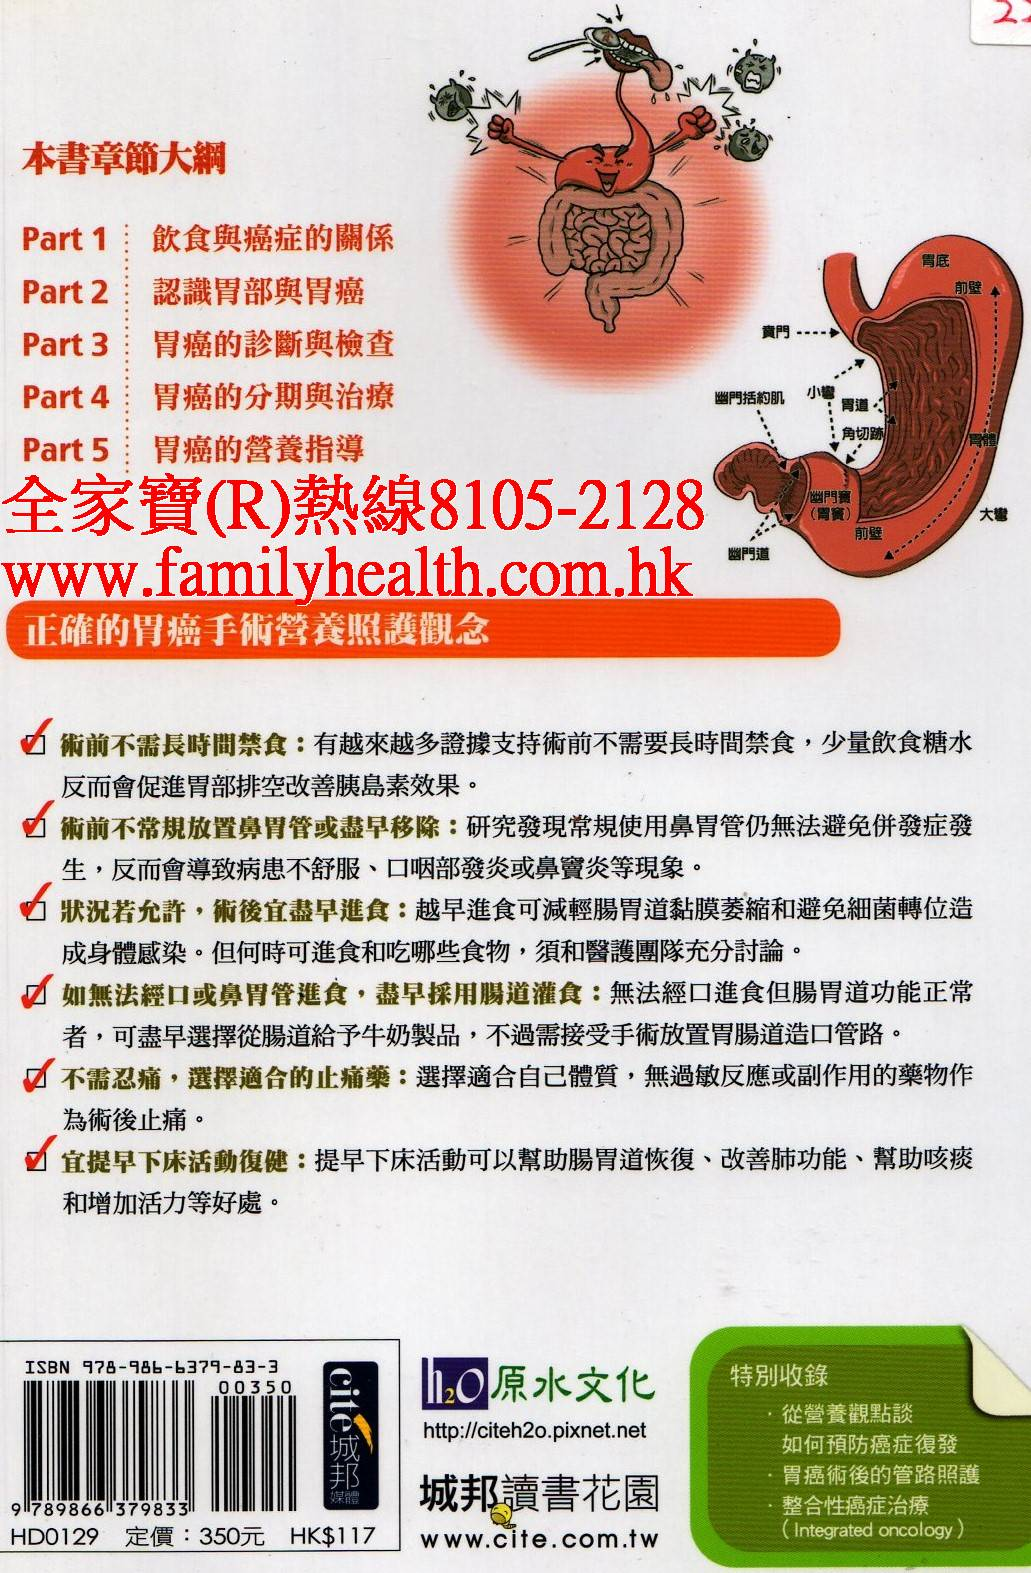 http://www.familyhealth.com.hk/files/full/1164_1.jpg